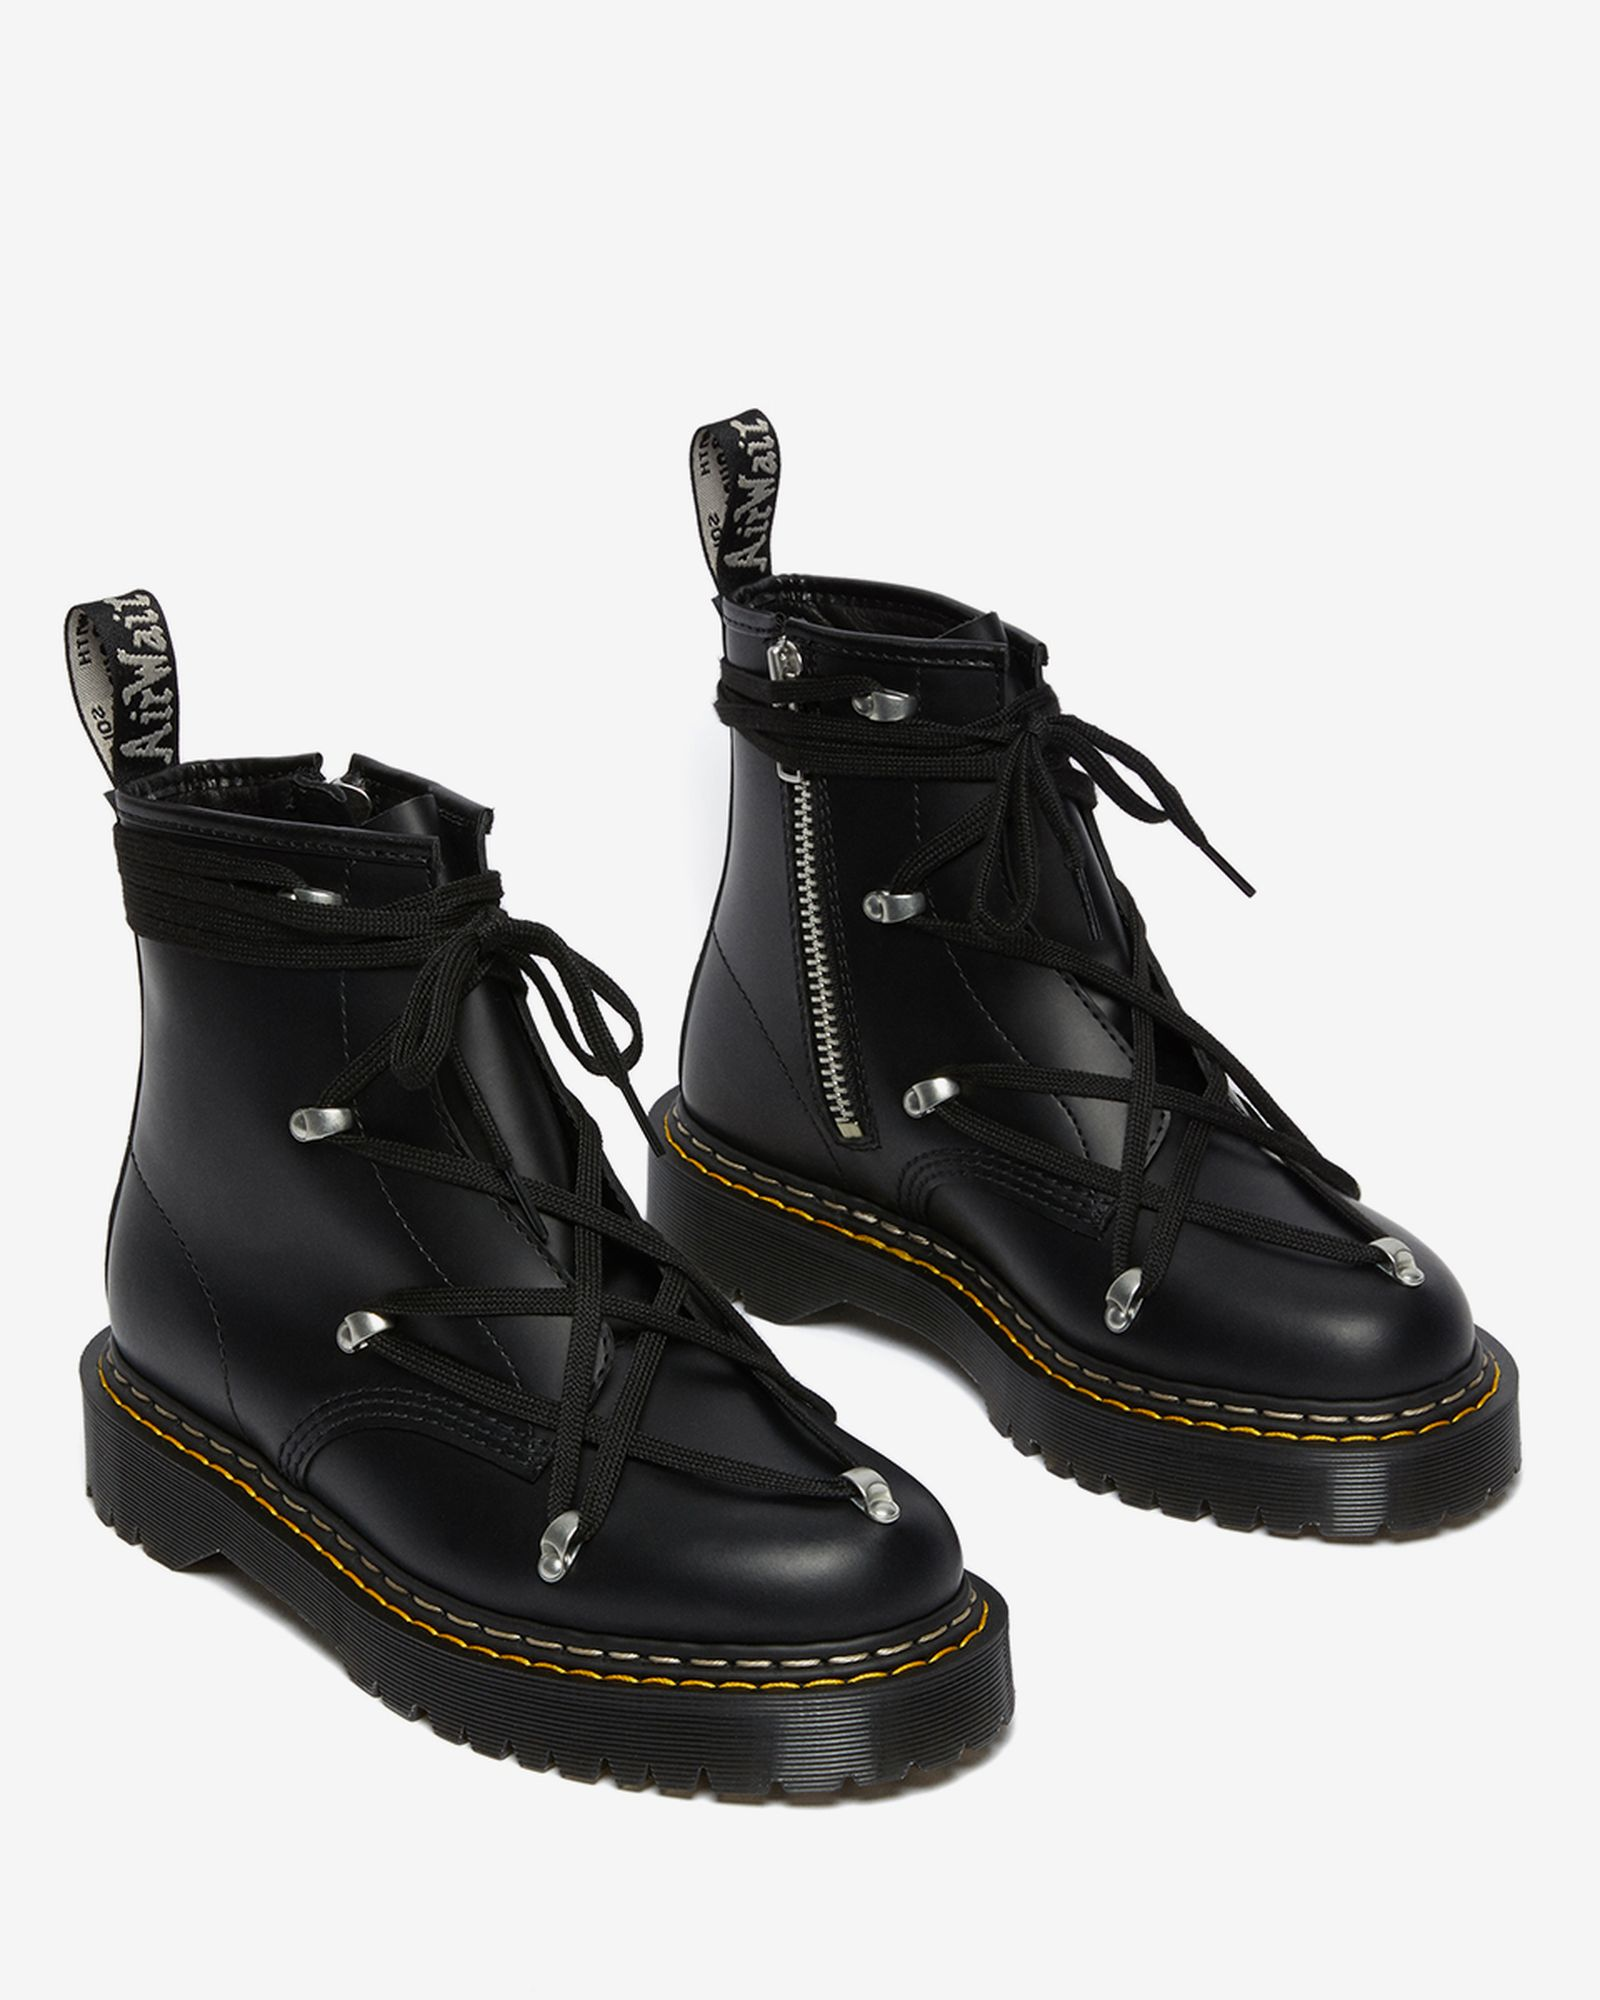 rick-owens-dr-martens-1460-bex-release-date-price-04